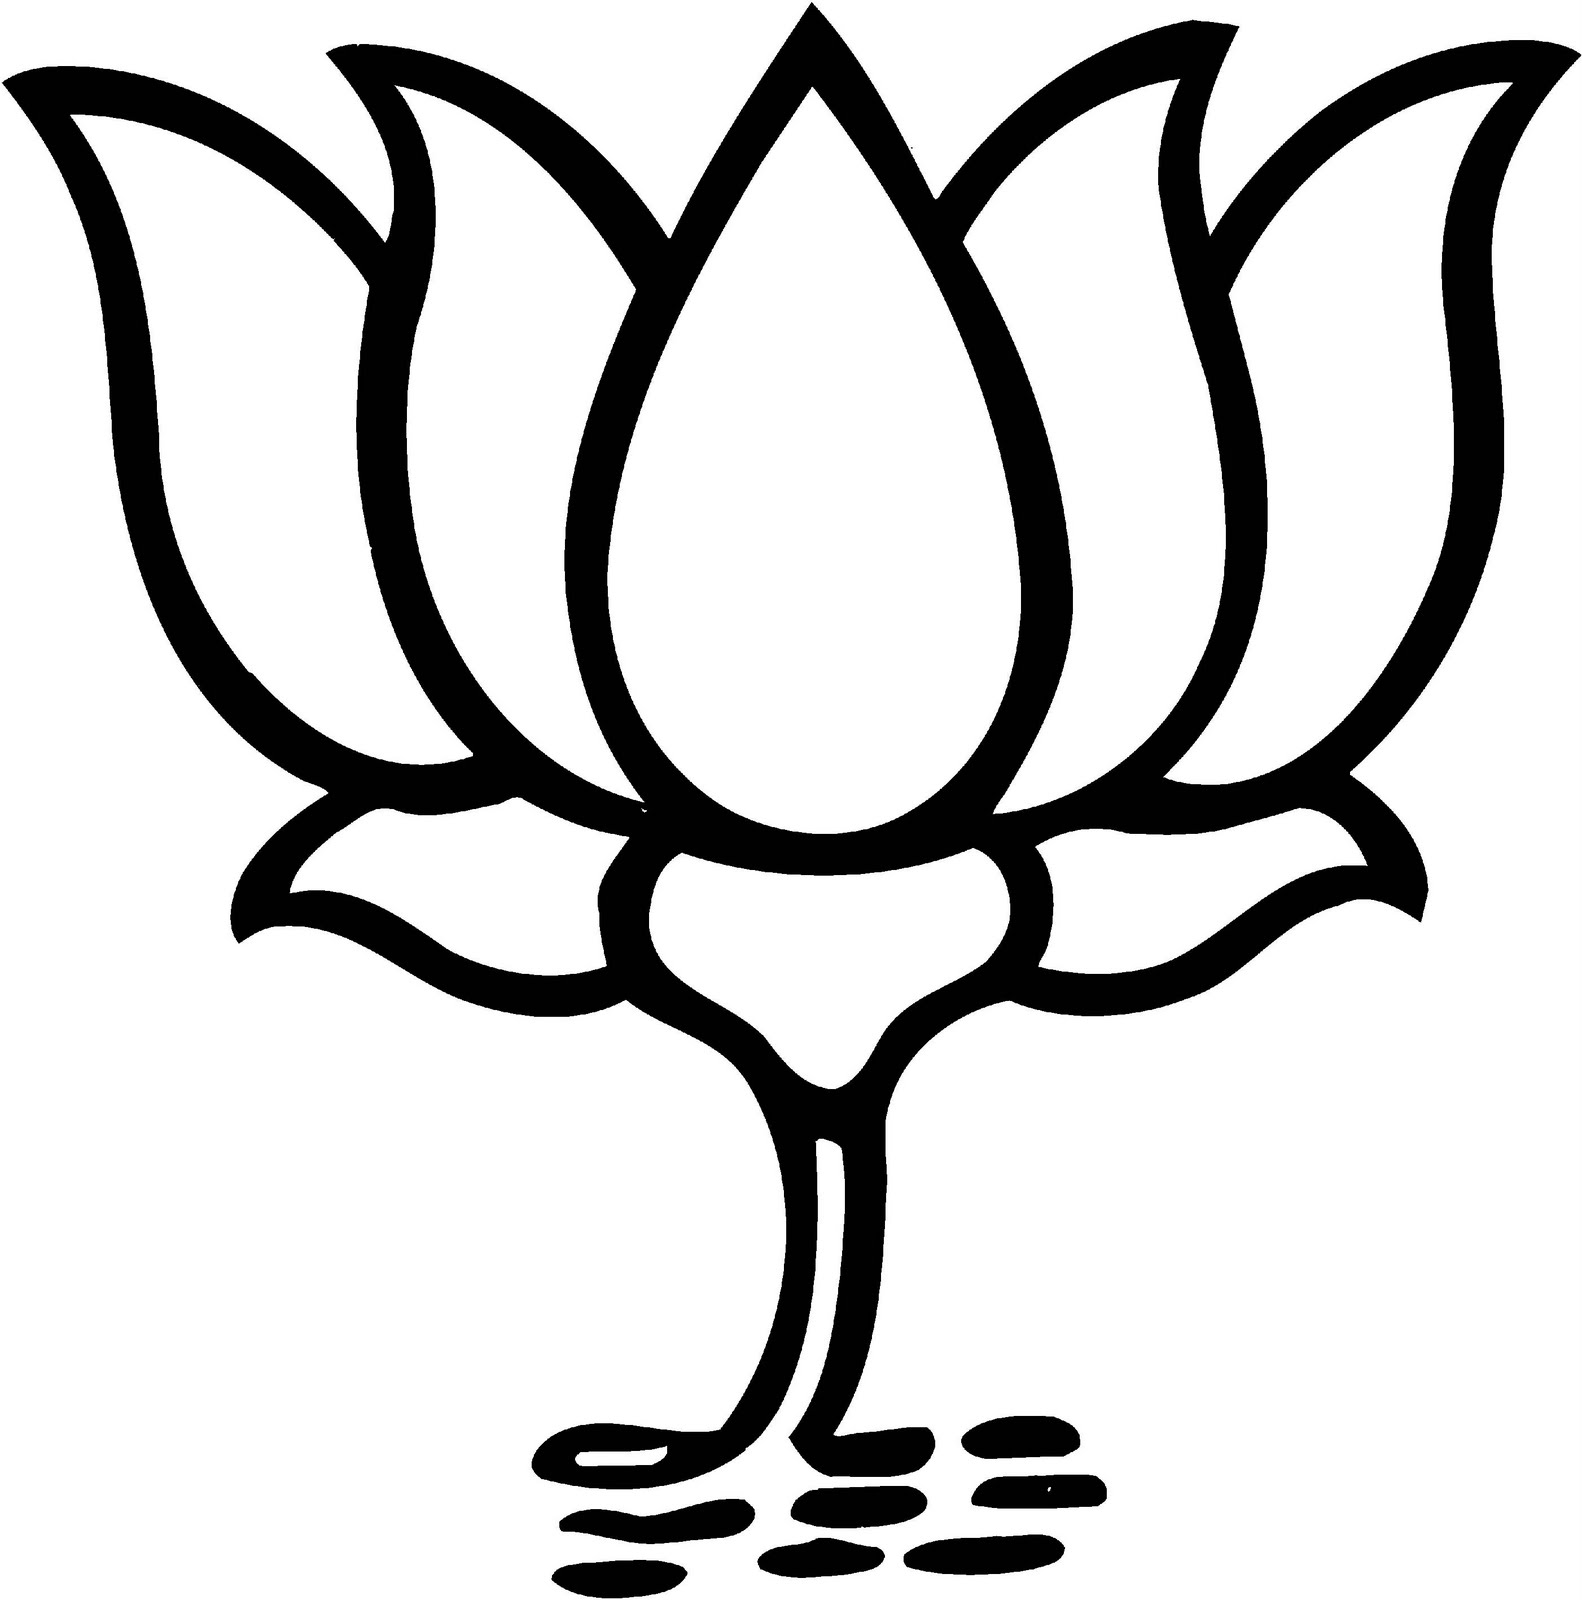 Clip Arts And Images Of India Political Party Flags Amp Symbols